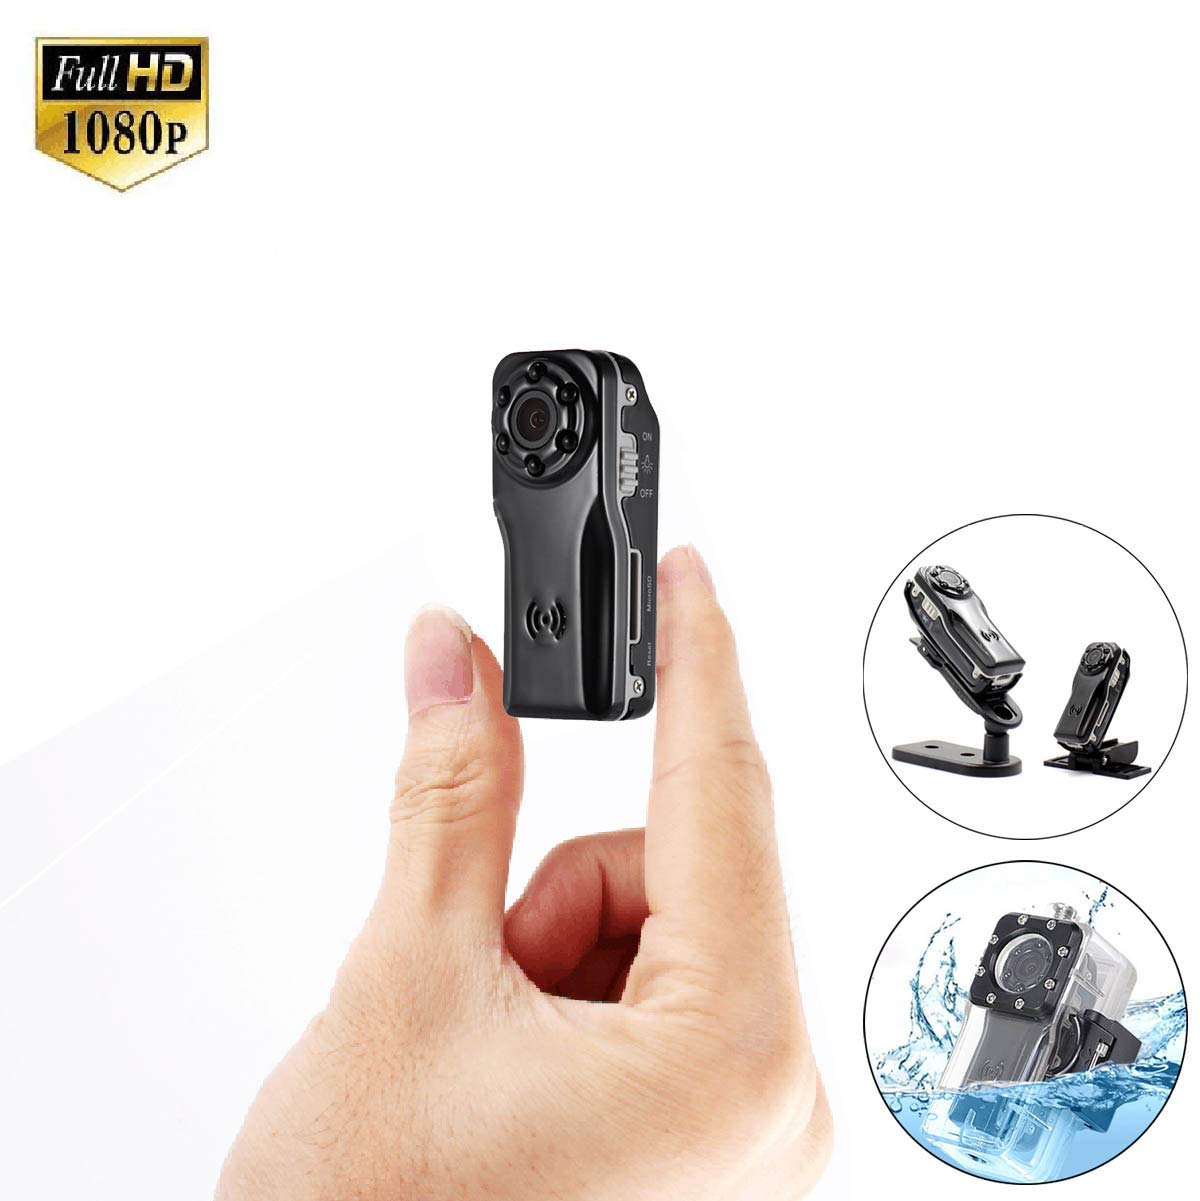 Mini Hidden Spy Nanny Camera SANPROV HD 1080P Security Surveillance Cam Small Portable Video Recorder with Motion Detection Night Vision Waterproof Case for Home Office Indoor Outdoor